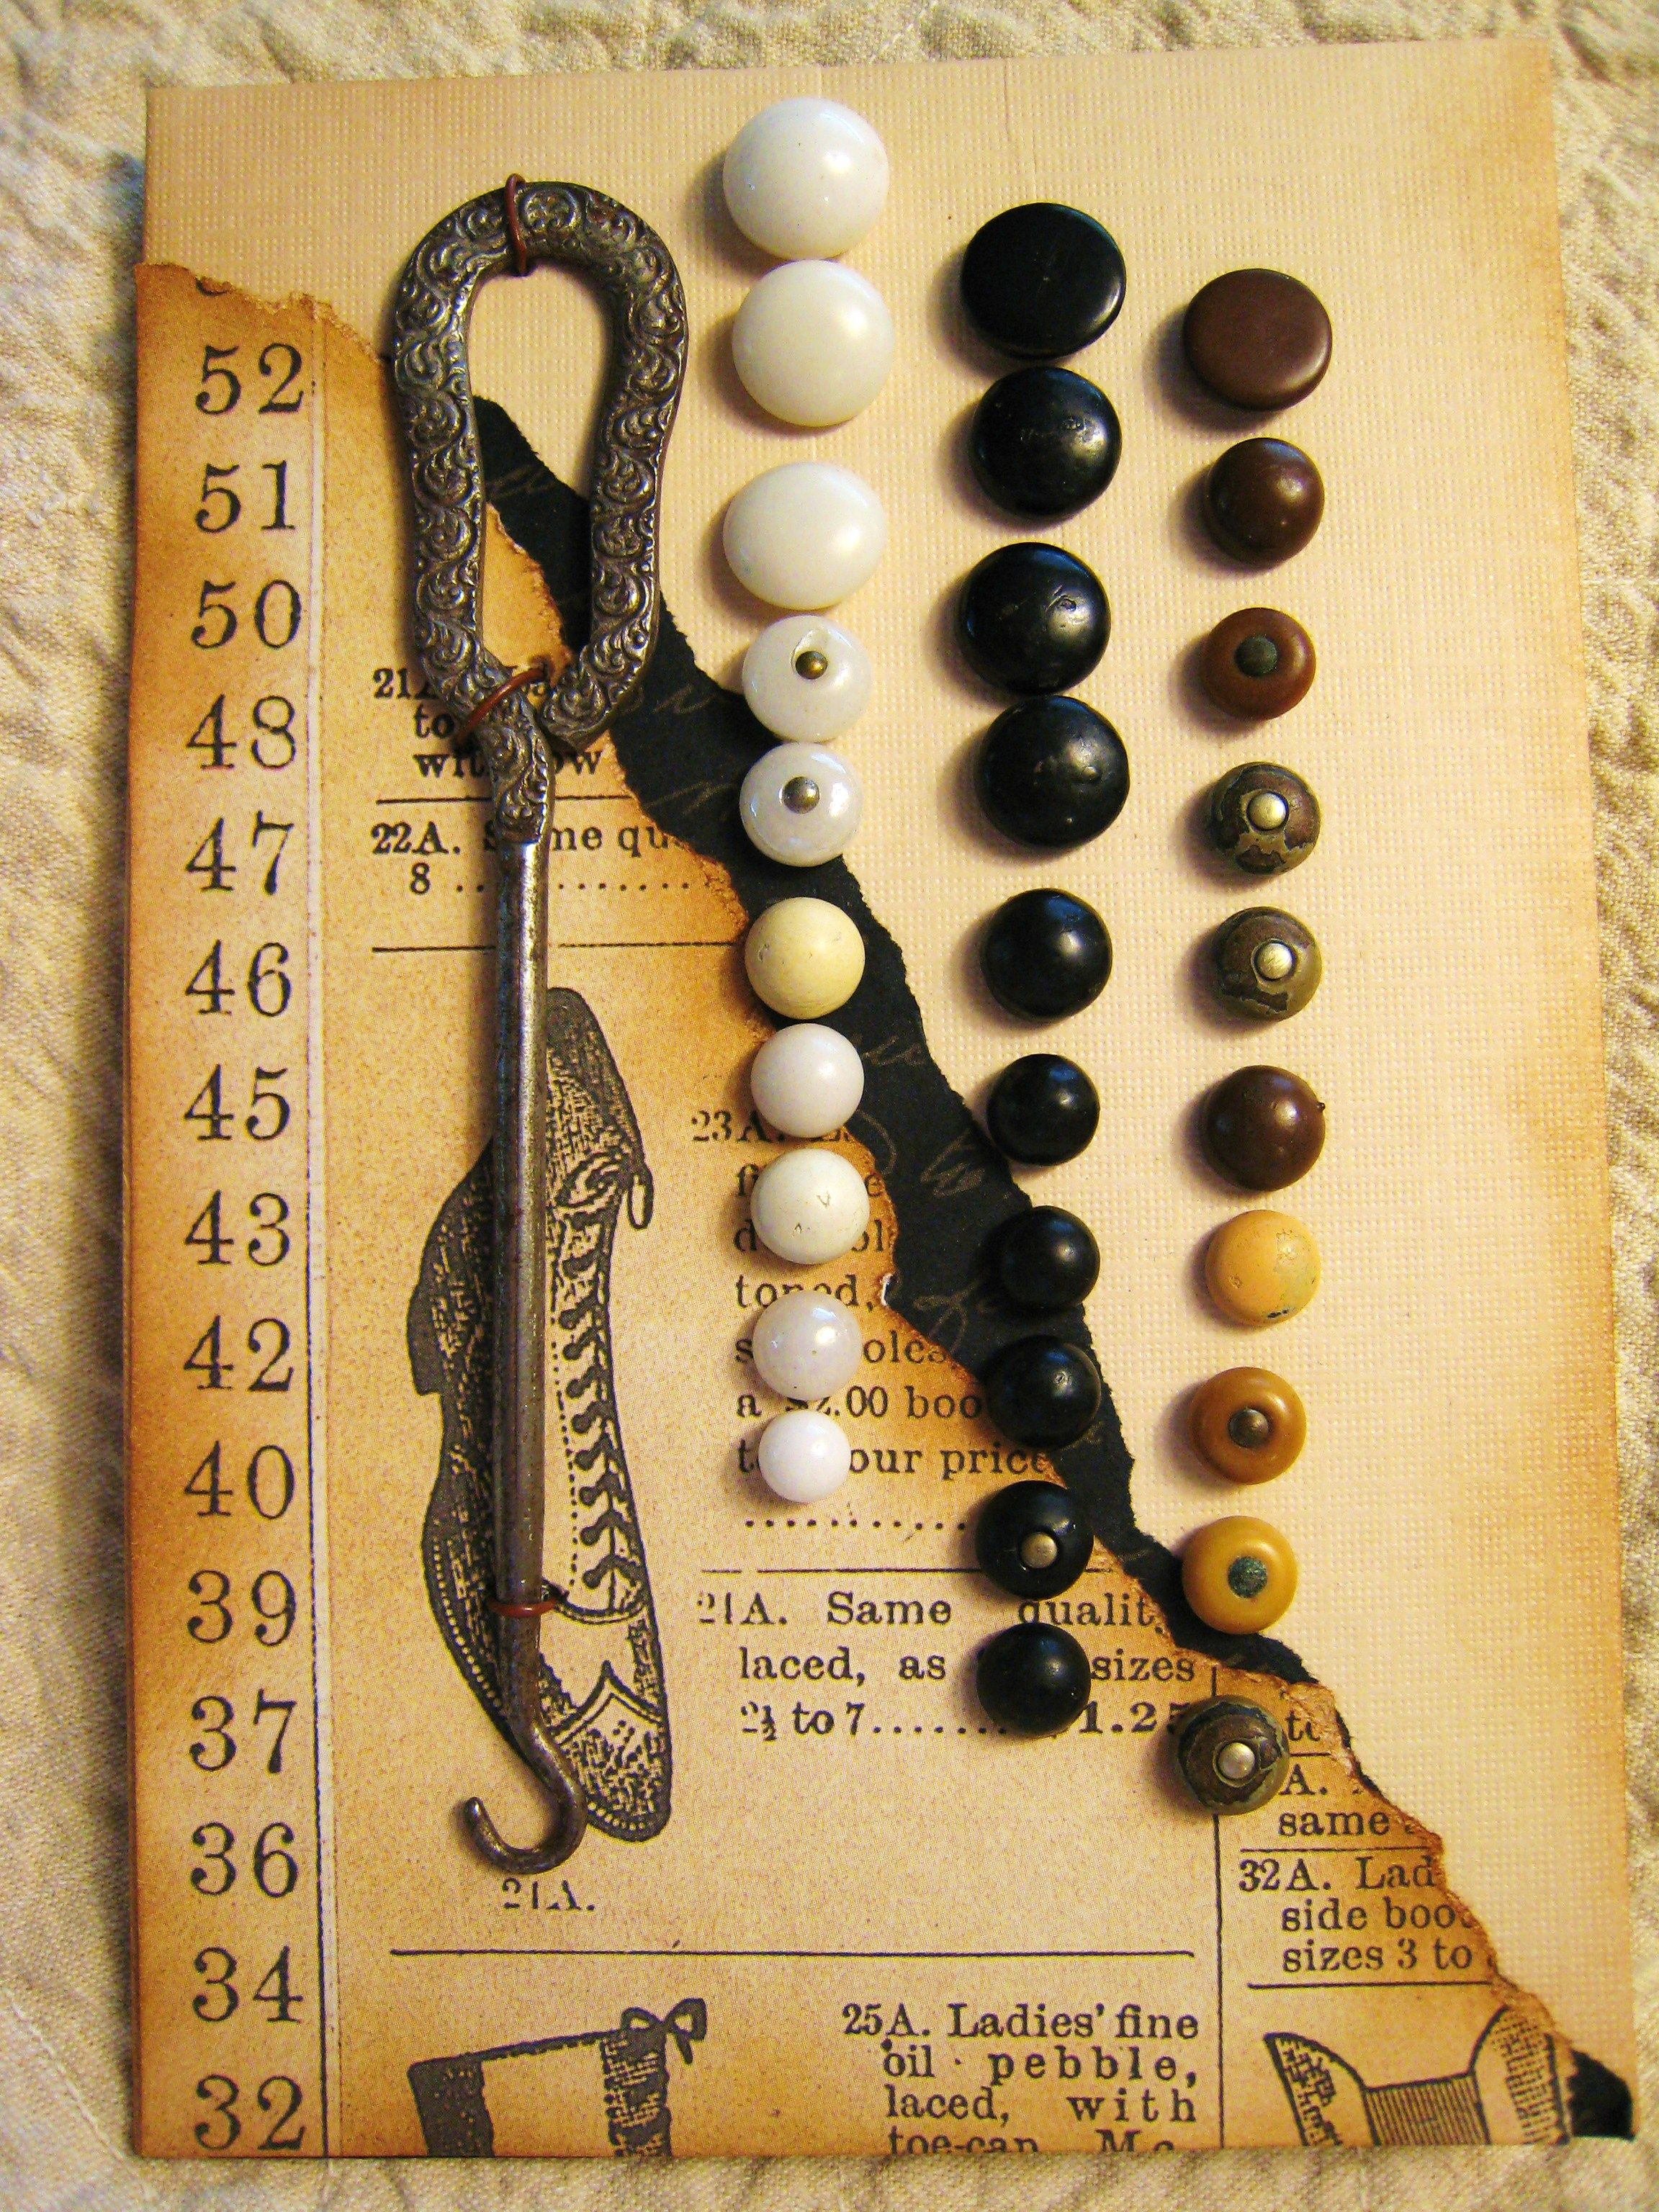 old shoe buttons on scrapbook card